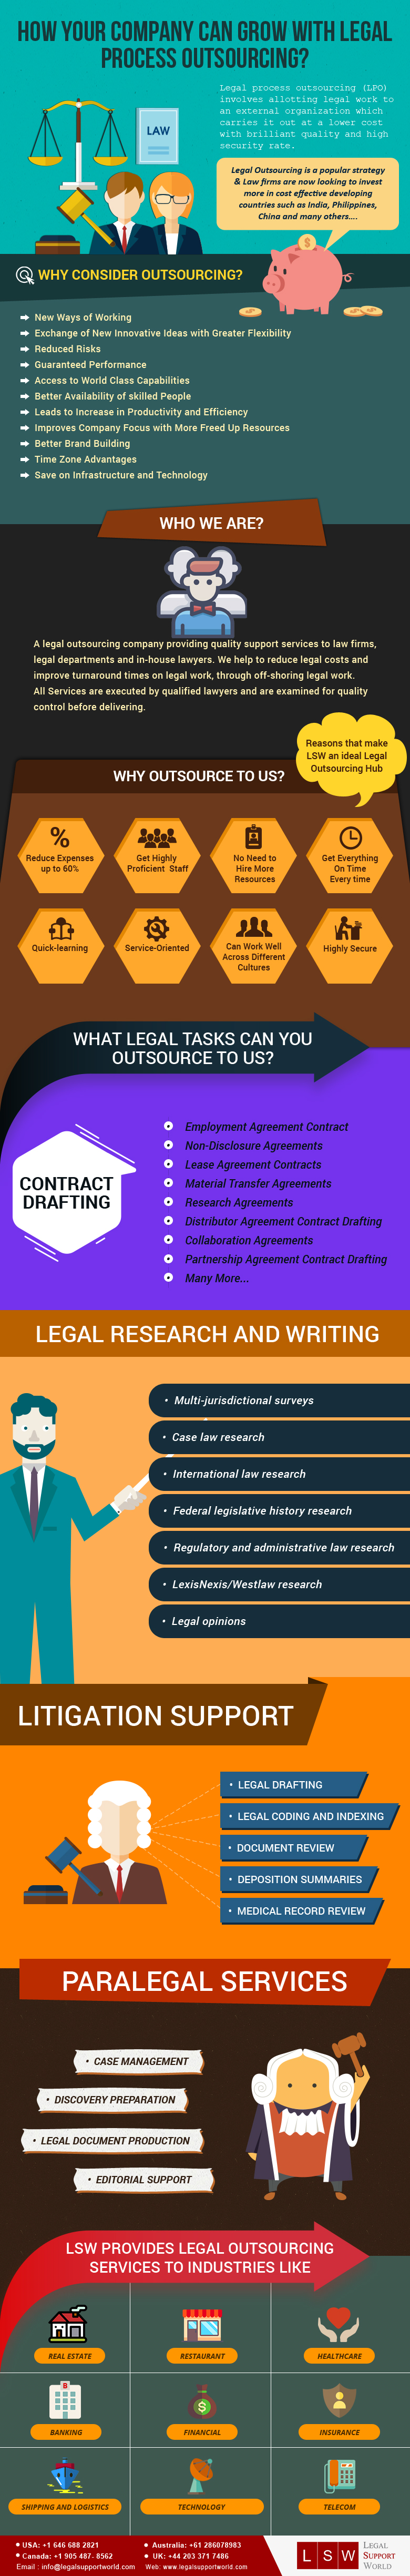 Legal Process Outsourcing How Company Can Grow With Lpo